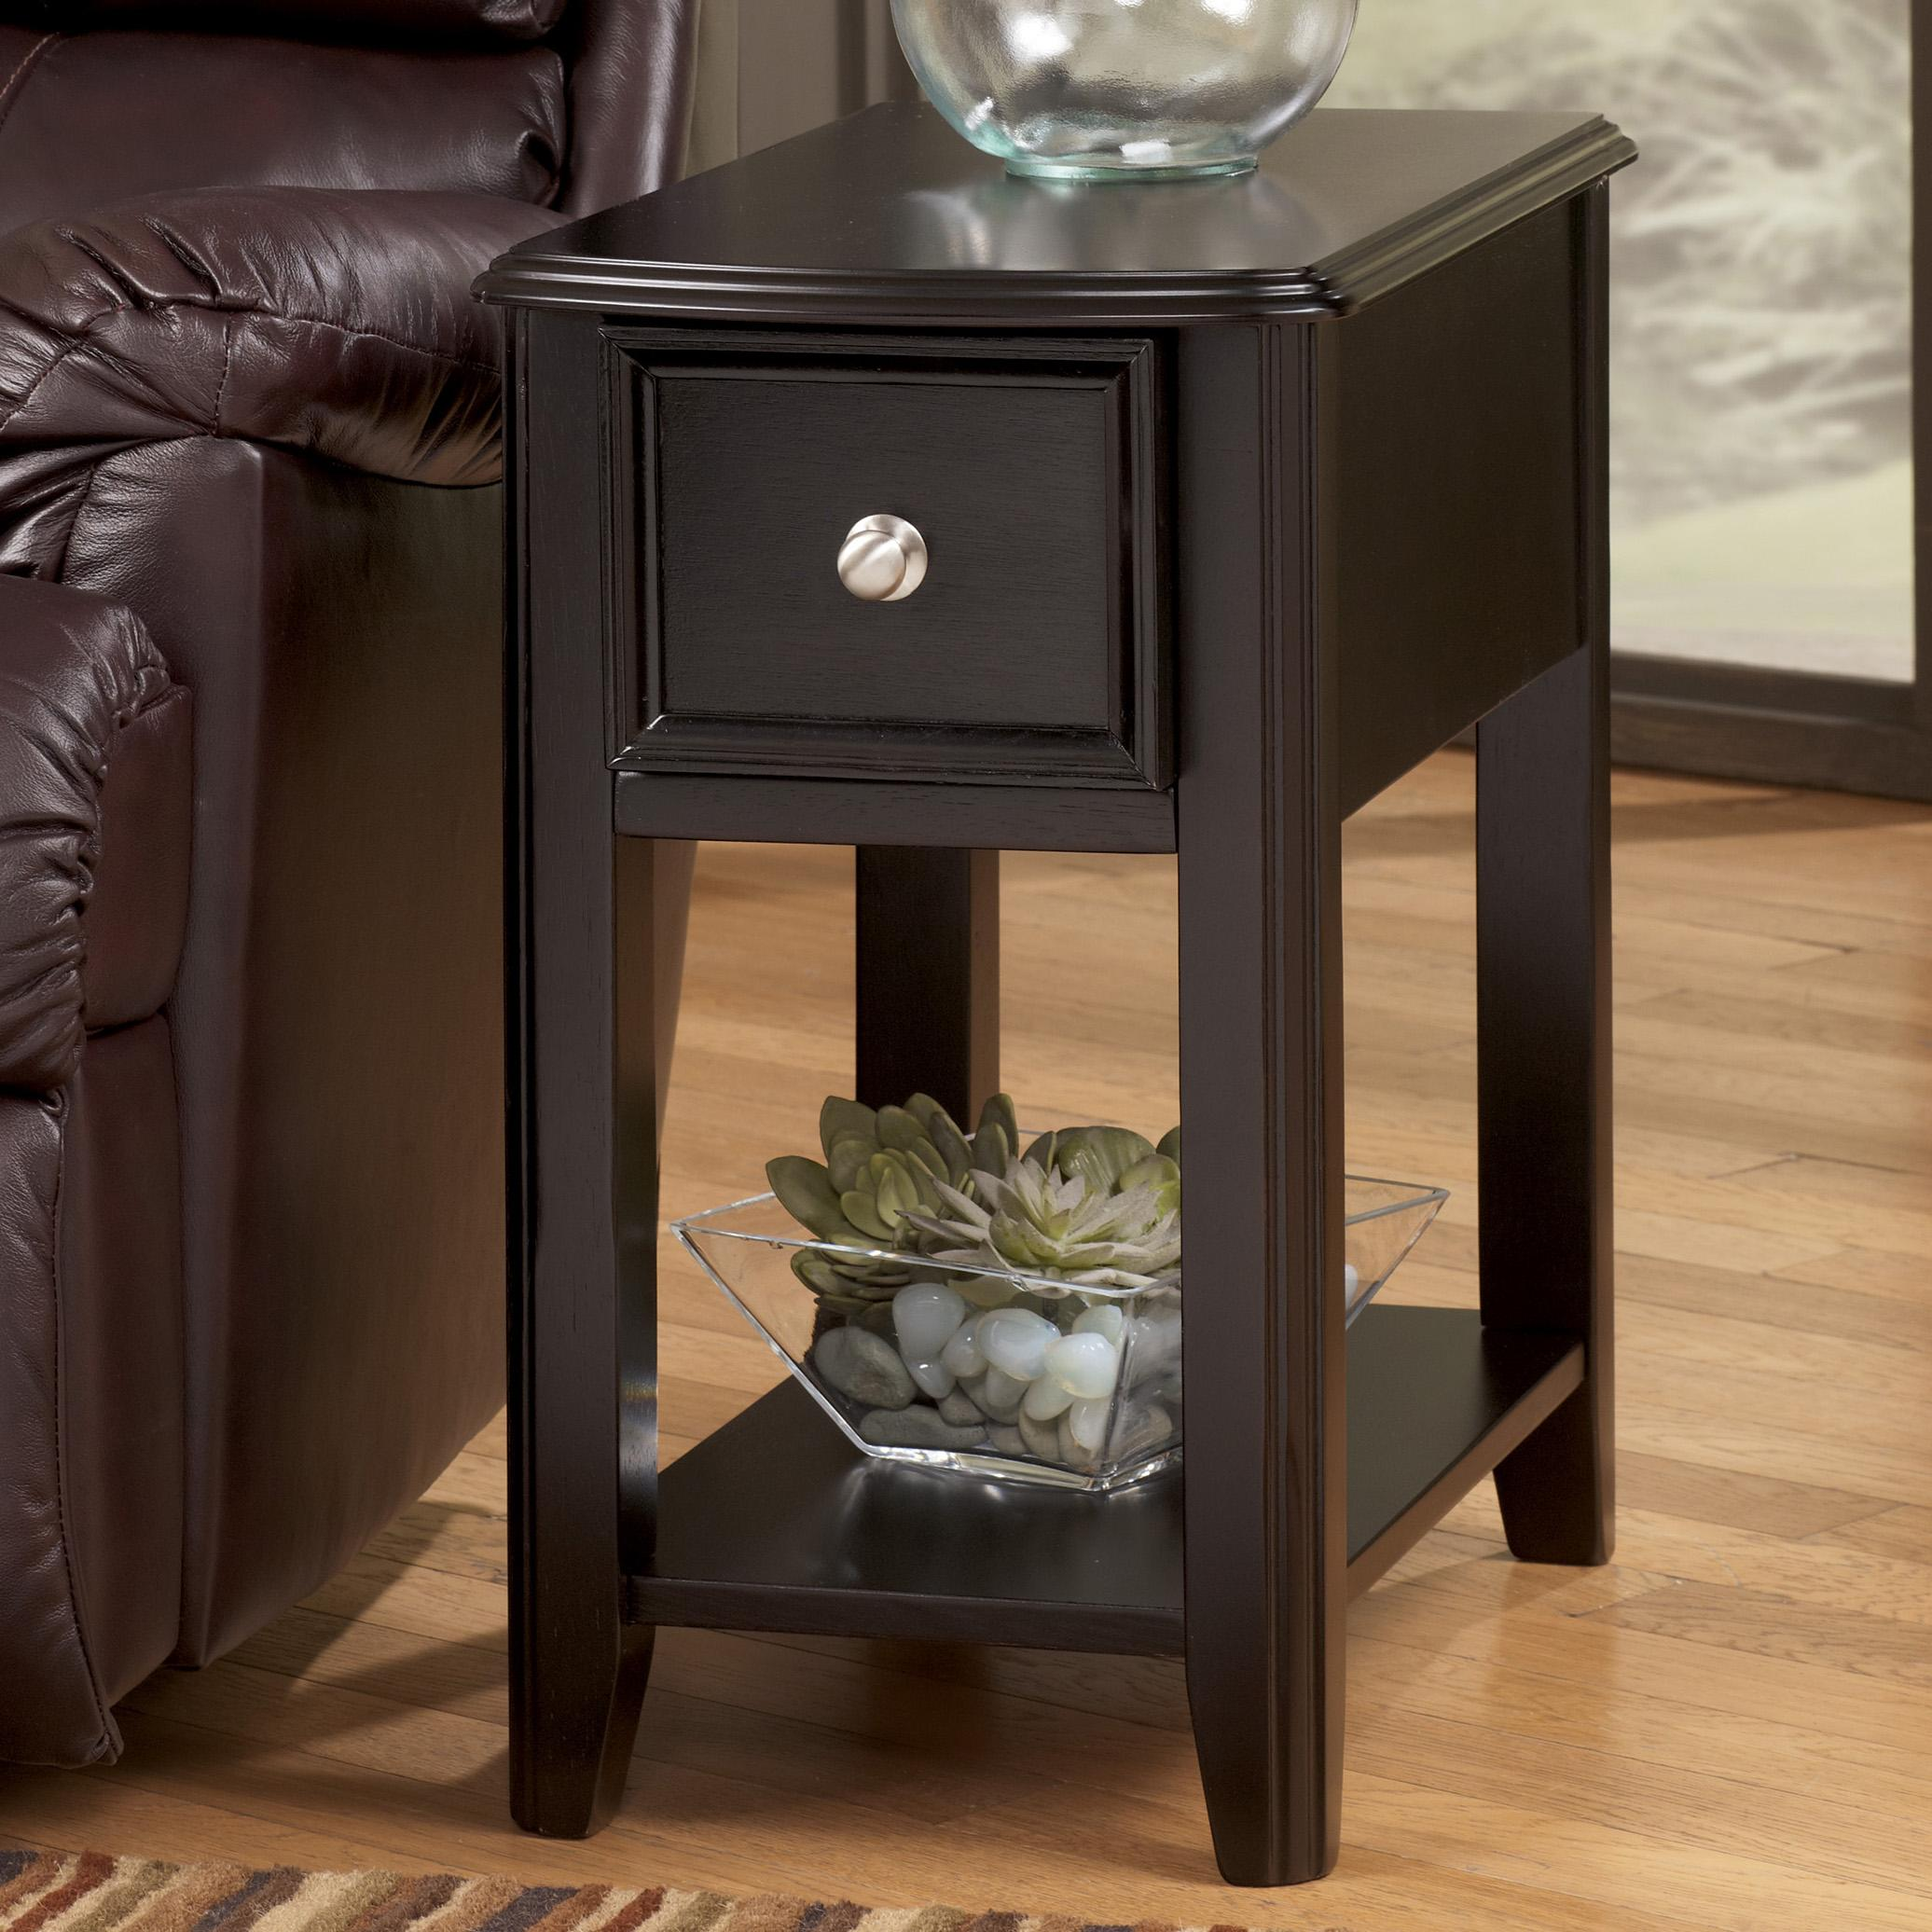 Breegin Chairside End Table by Ashley (Signature Design) at Johnny Janosik